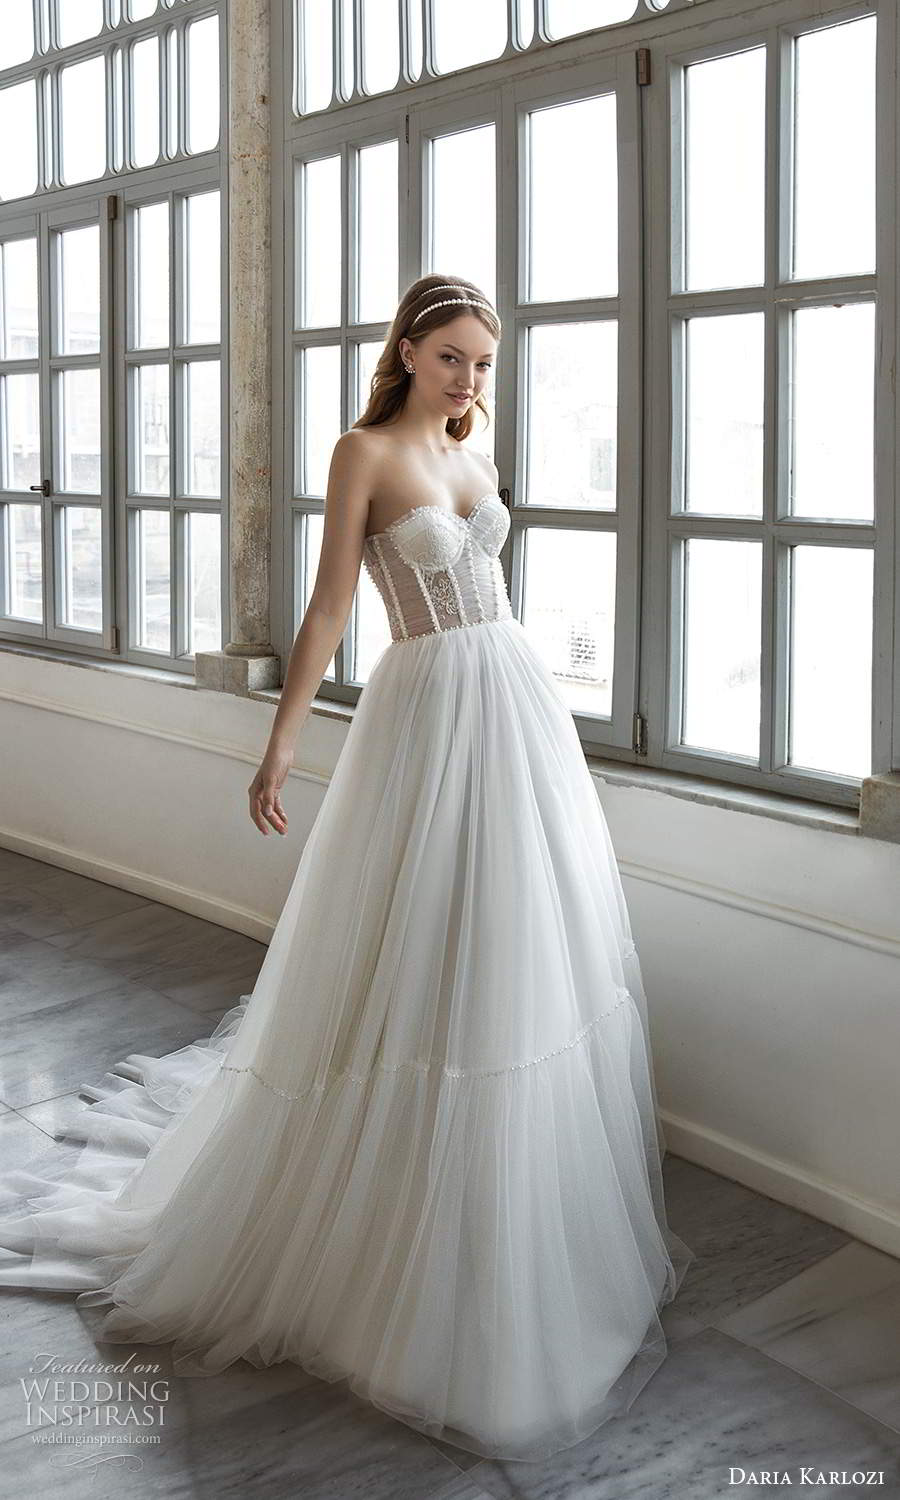 daria karlozi 2021 bridal strapless sweetheart neckline embellished sheer bodice a line ball gown wedding dress chapel train (13) mv